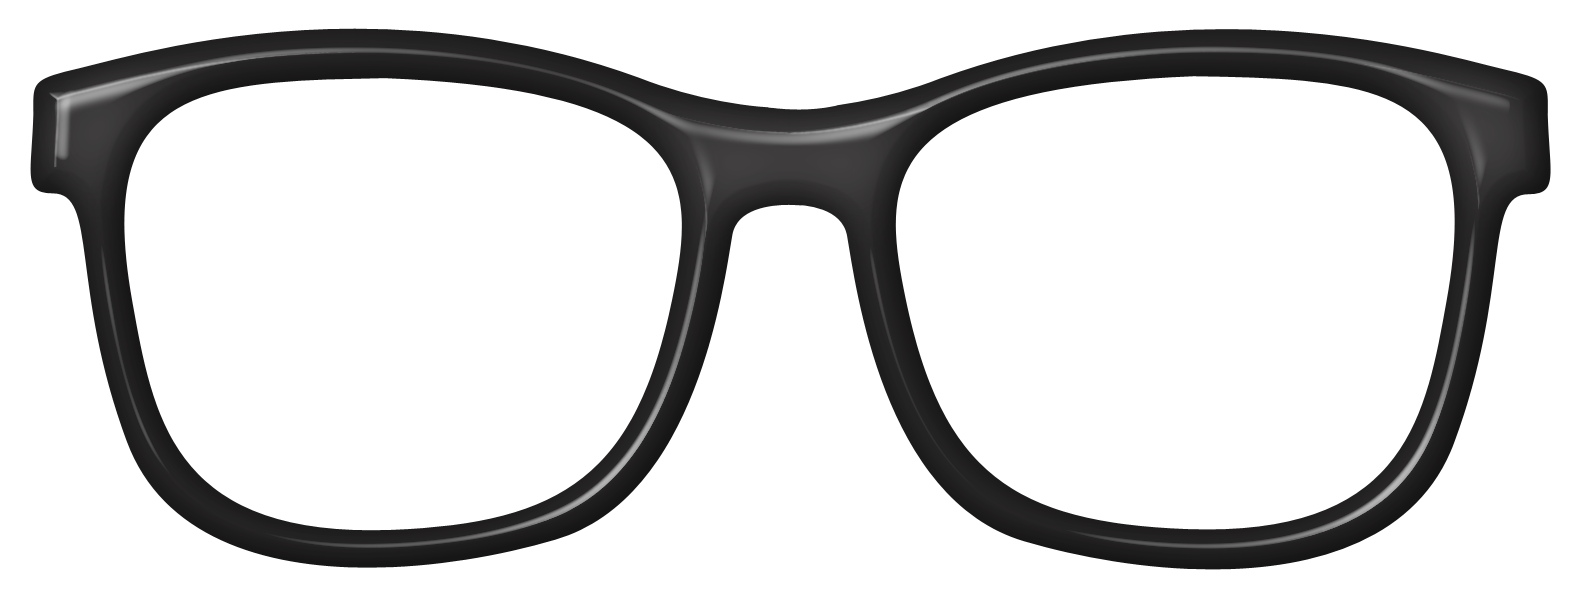 Drawing D Images And View With D Glasses